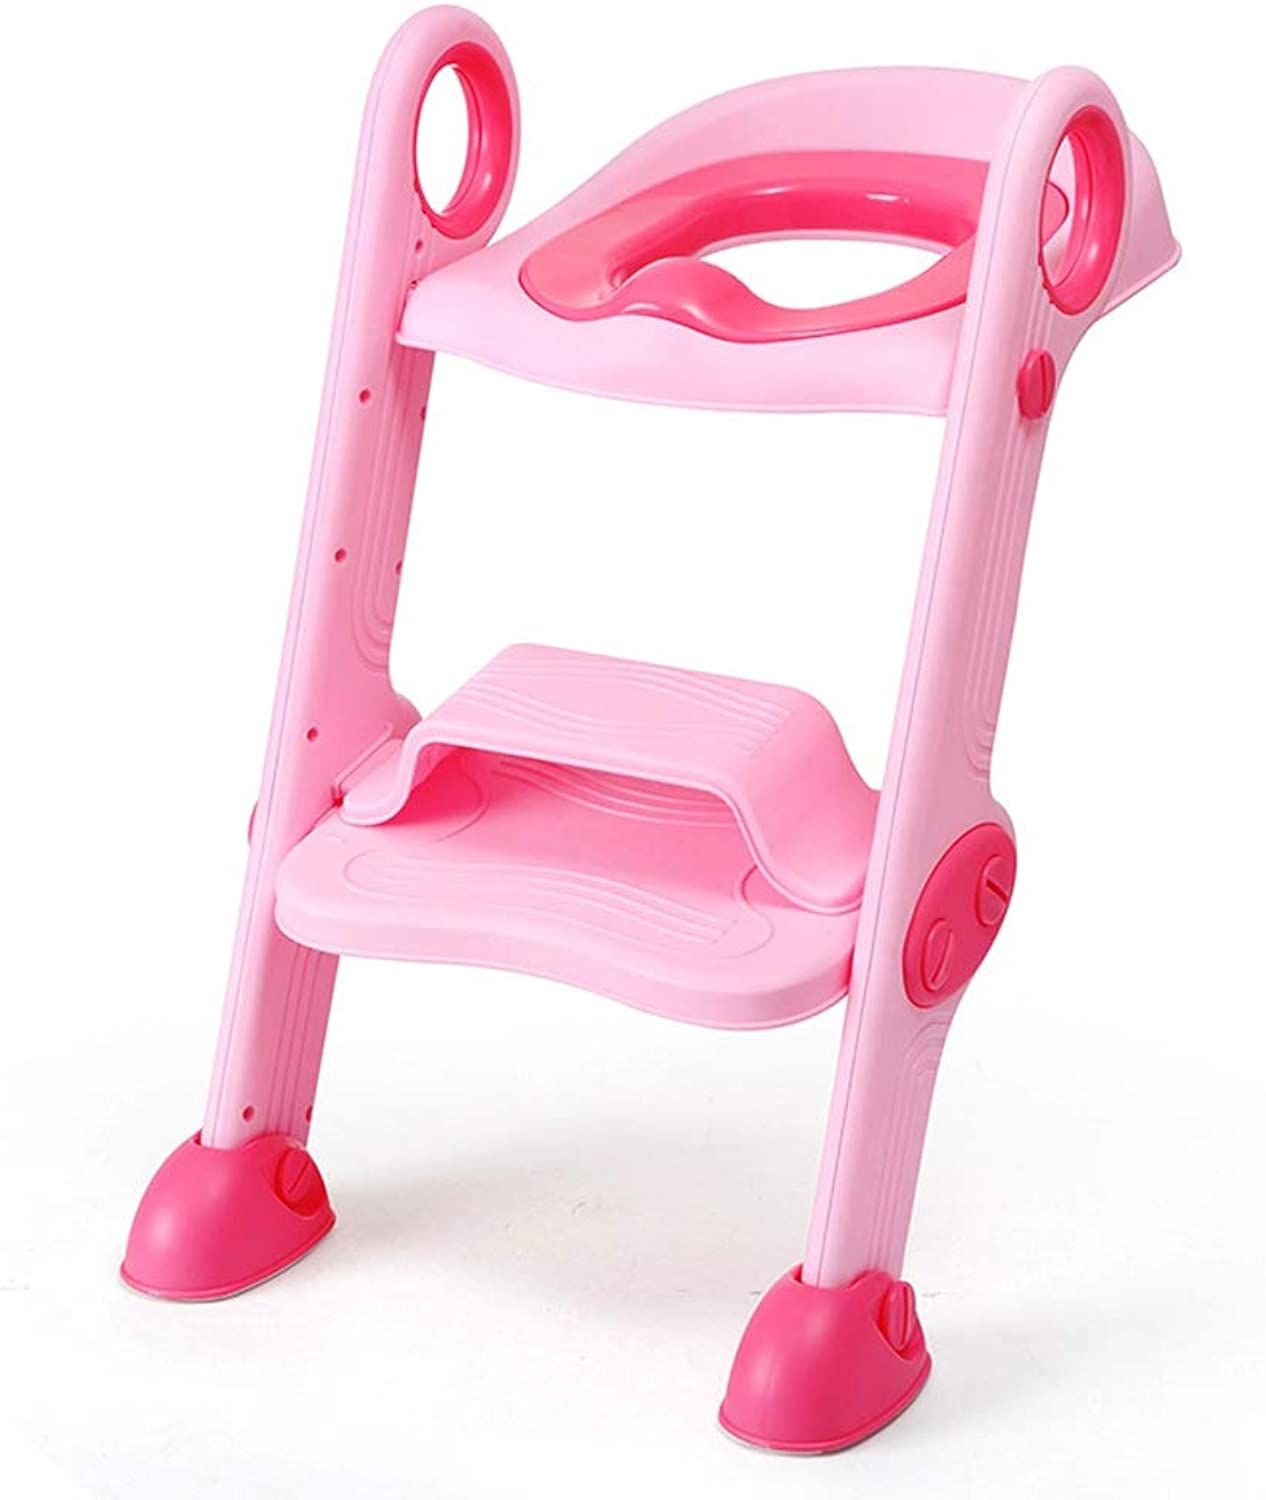 Qi Peng Stepped Baby Toilet Toilet Toilet Ladder Girl Baby Kid Boy Potty Seat Cover Cover Seat Ring (color   Pink, Edition   A)